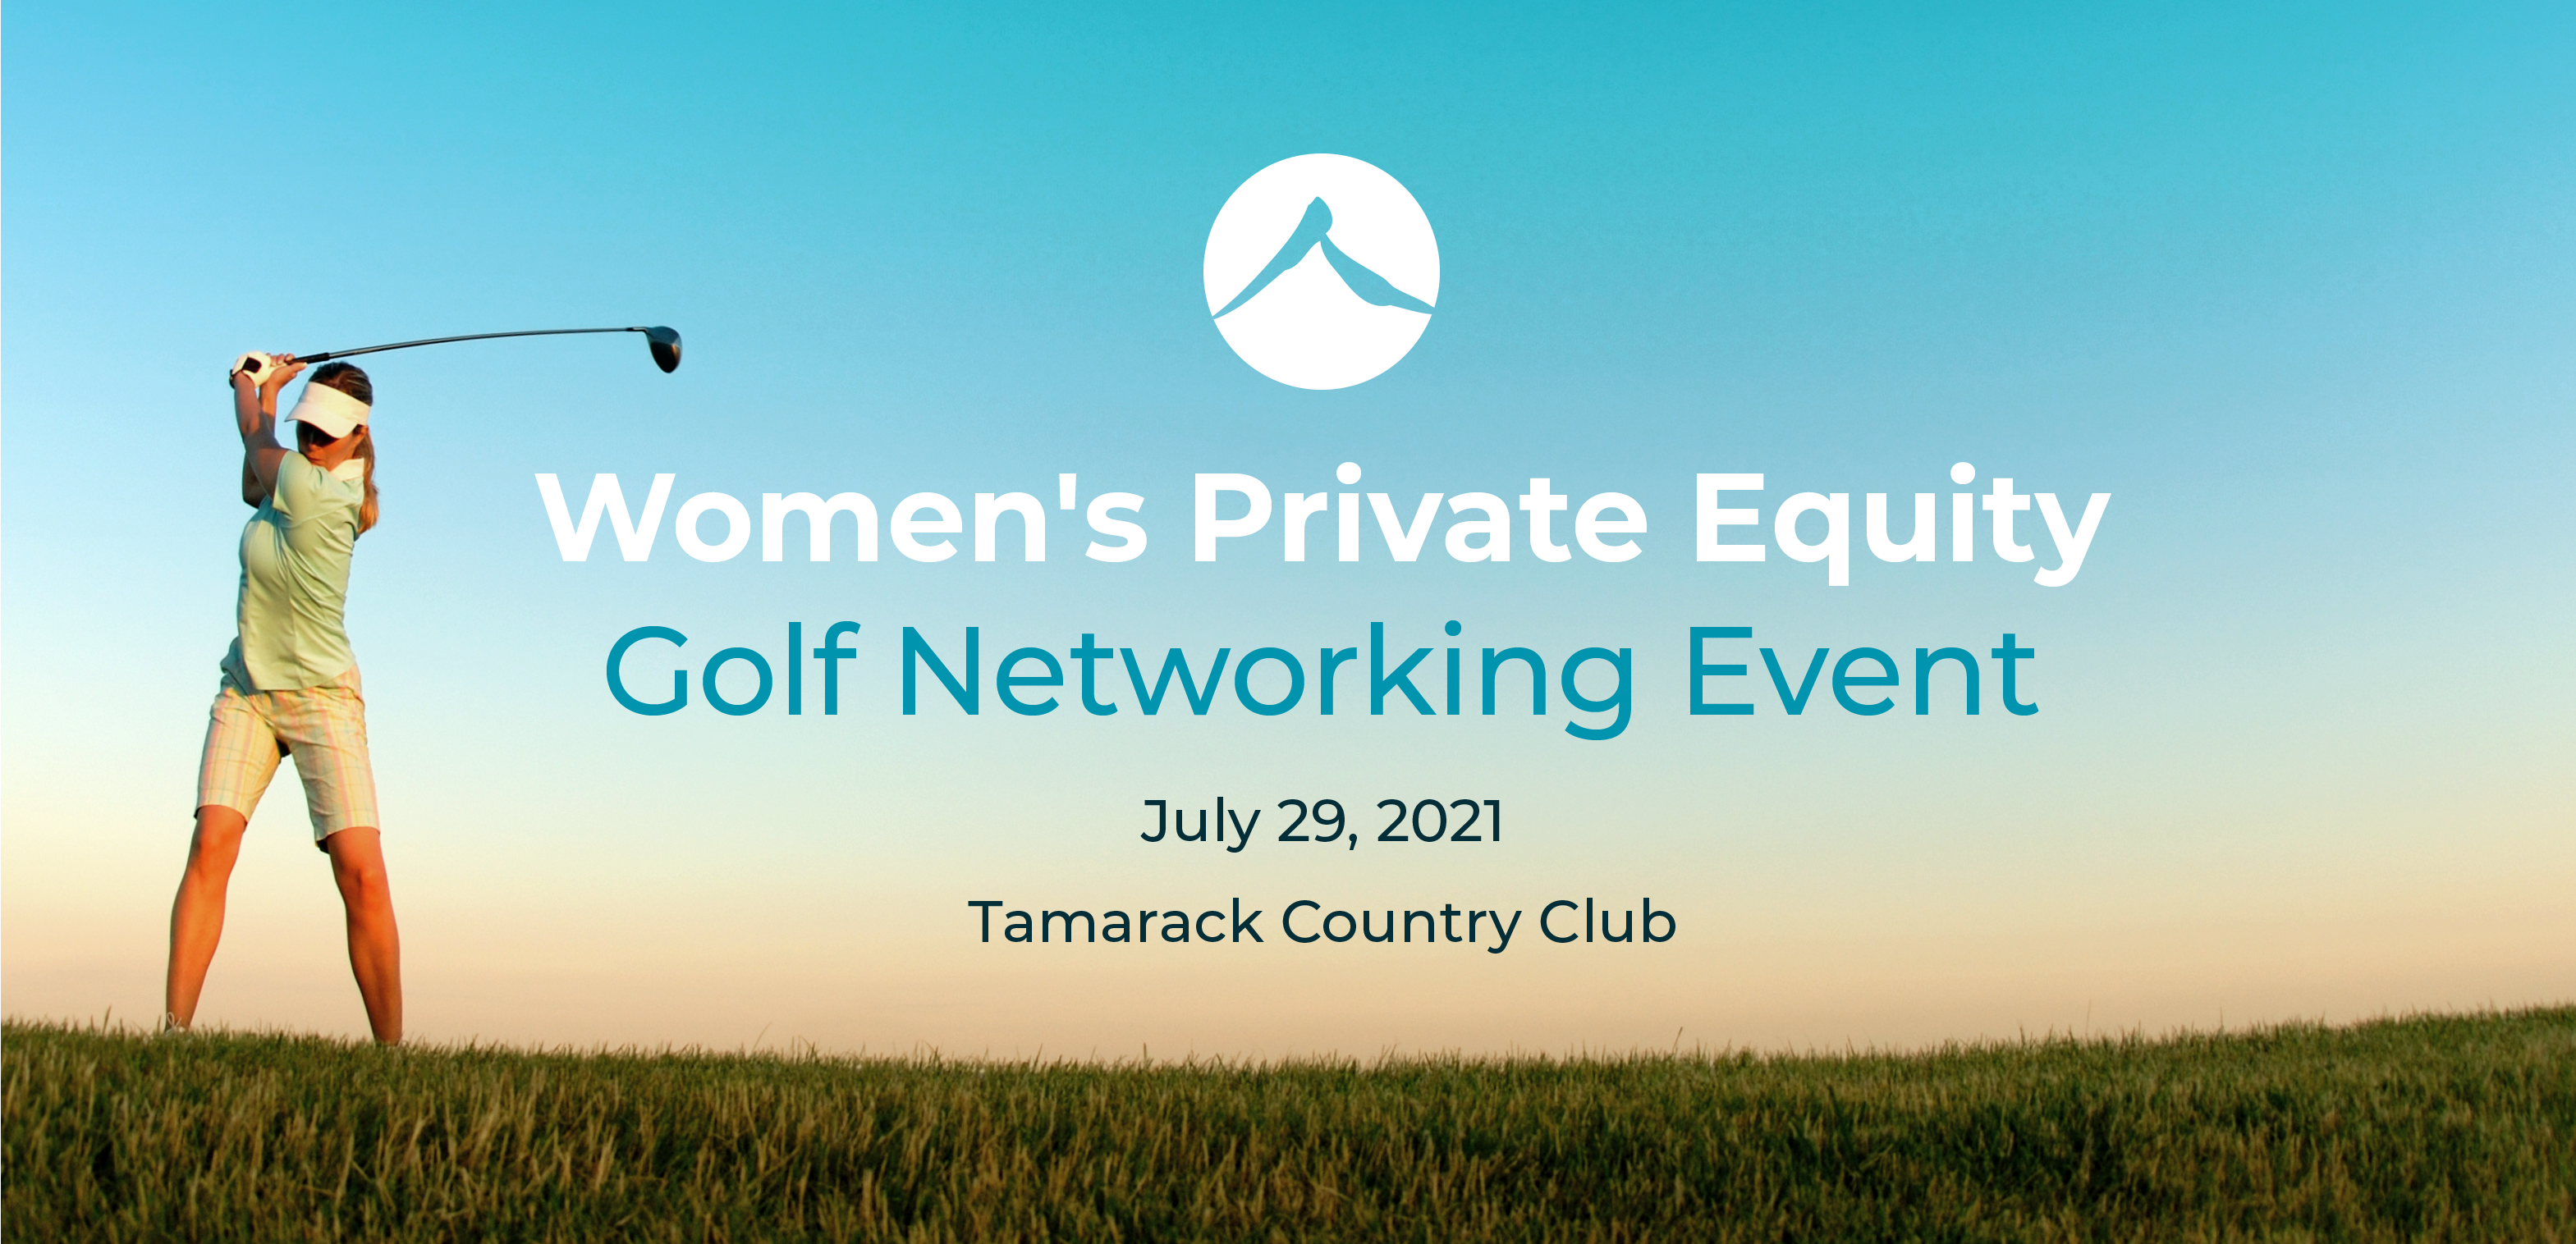 Women's Private Equity Golf Networking Event